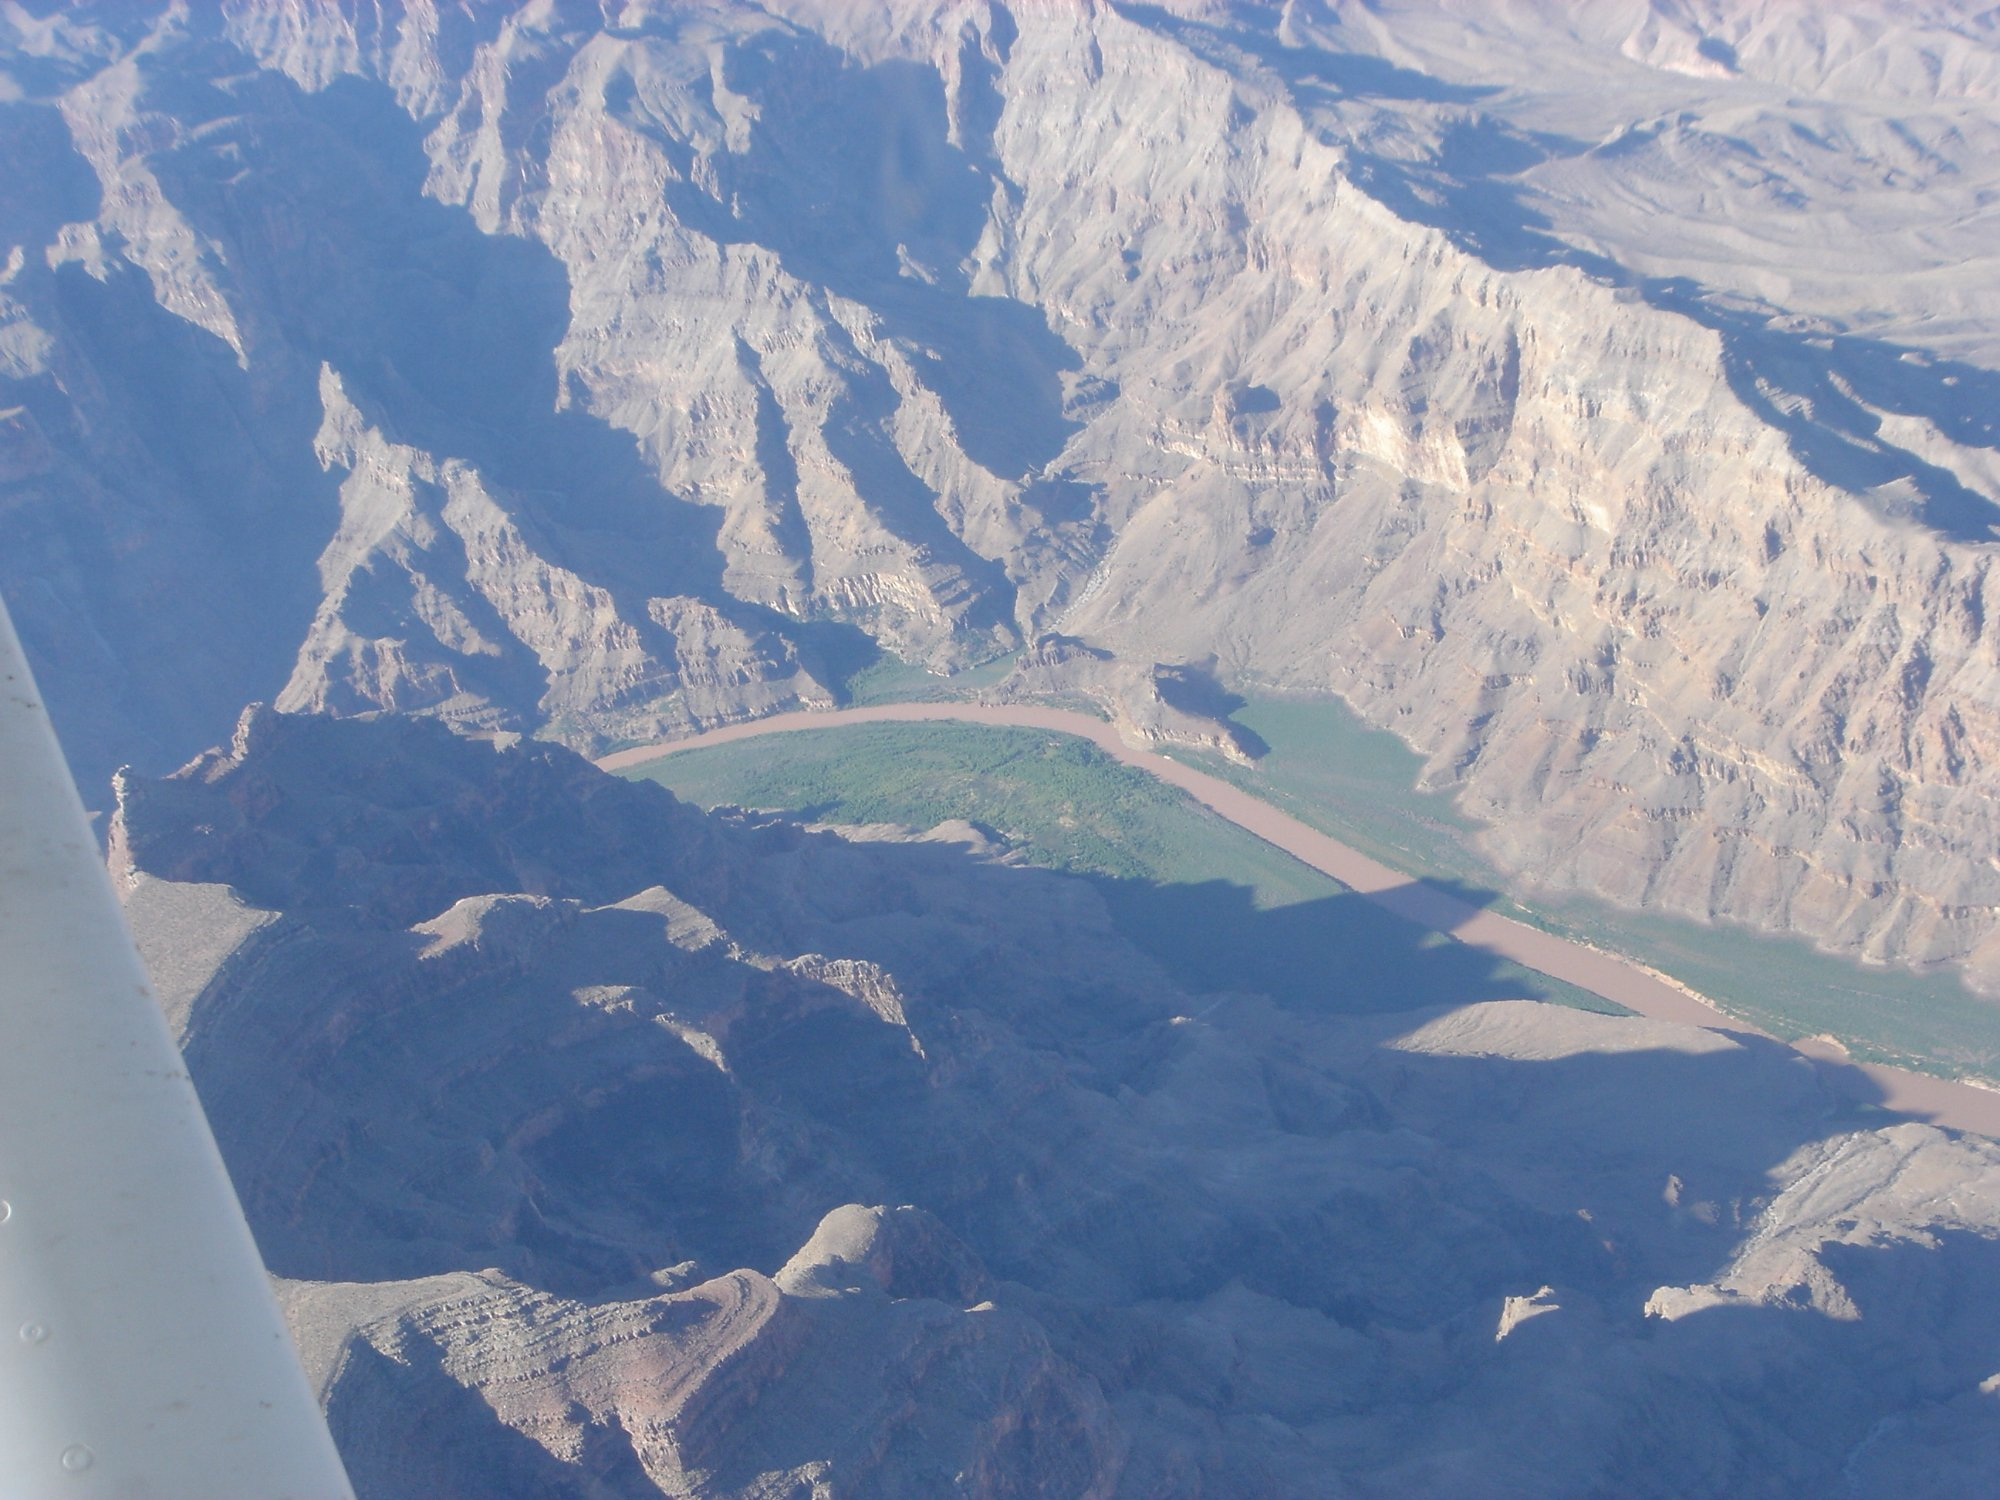 Colorado river and the Grand canyon from the air